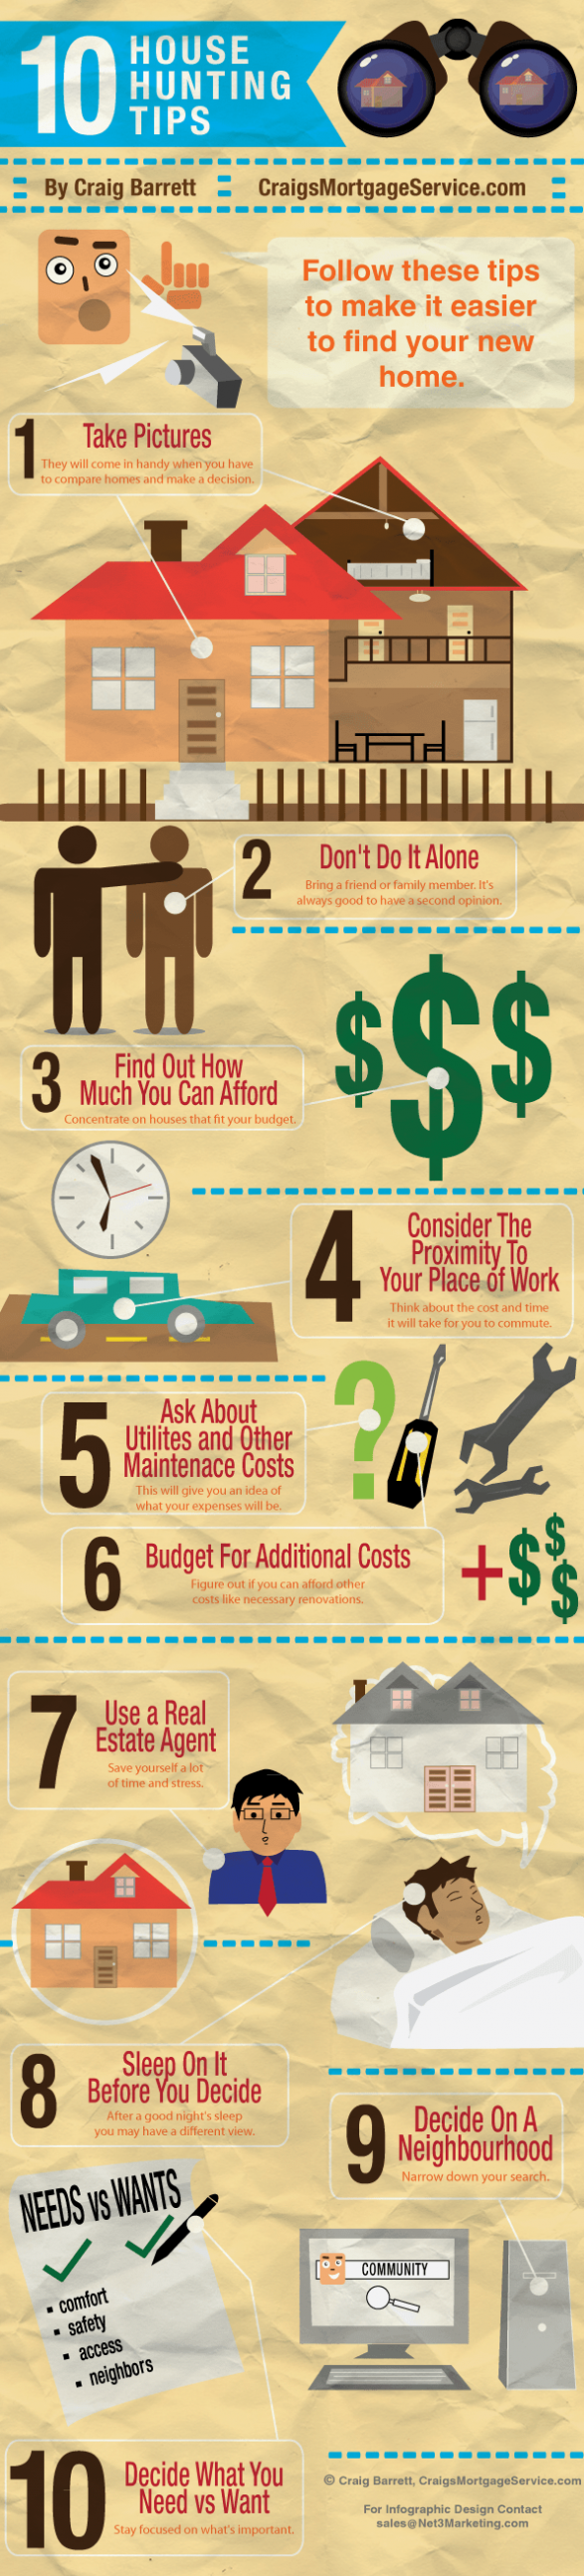 10 House Hunting Tips